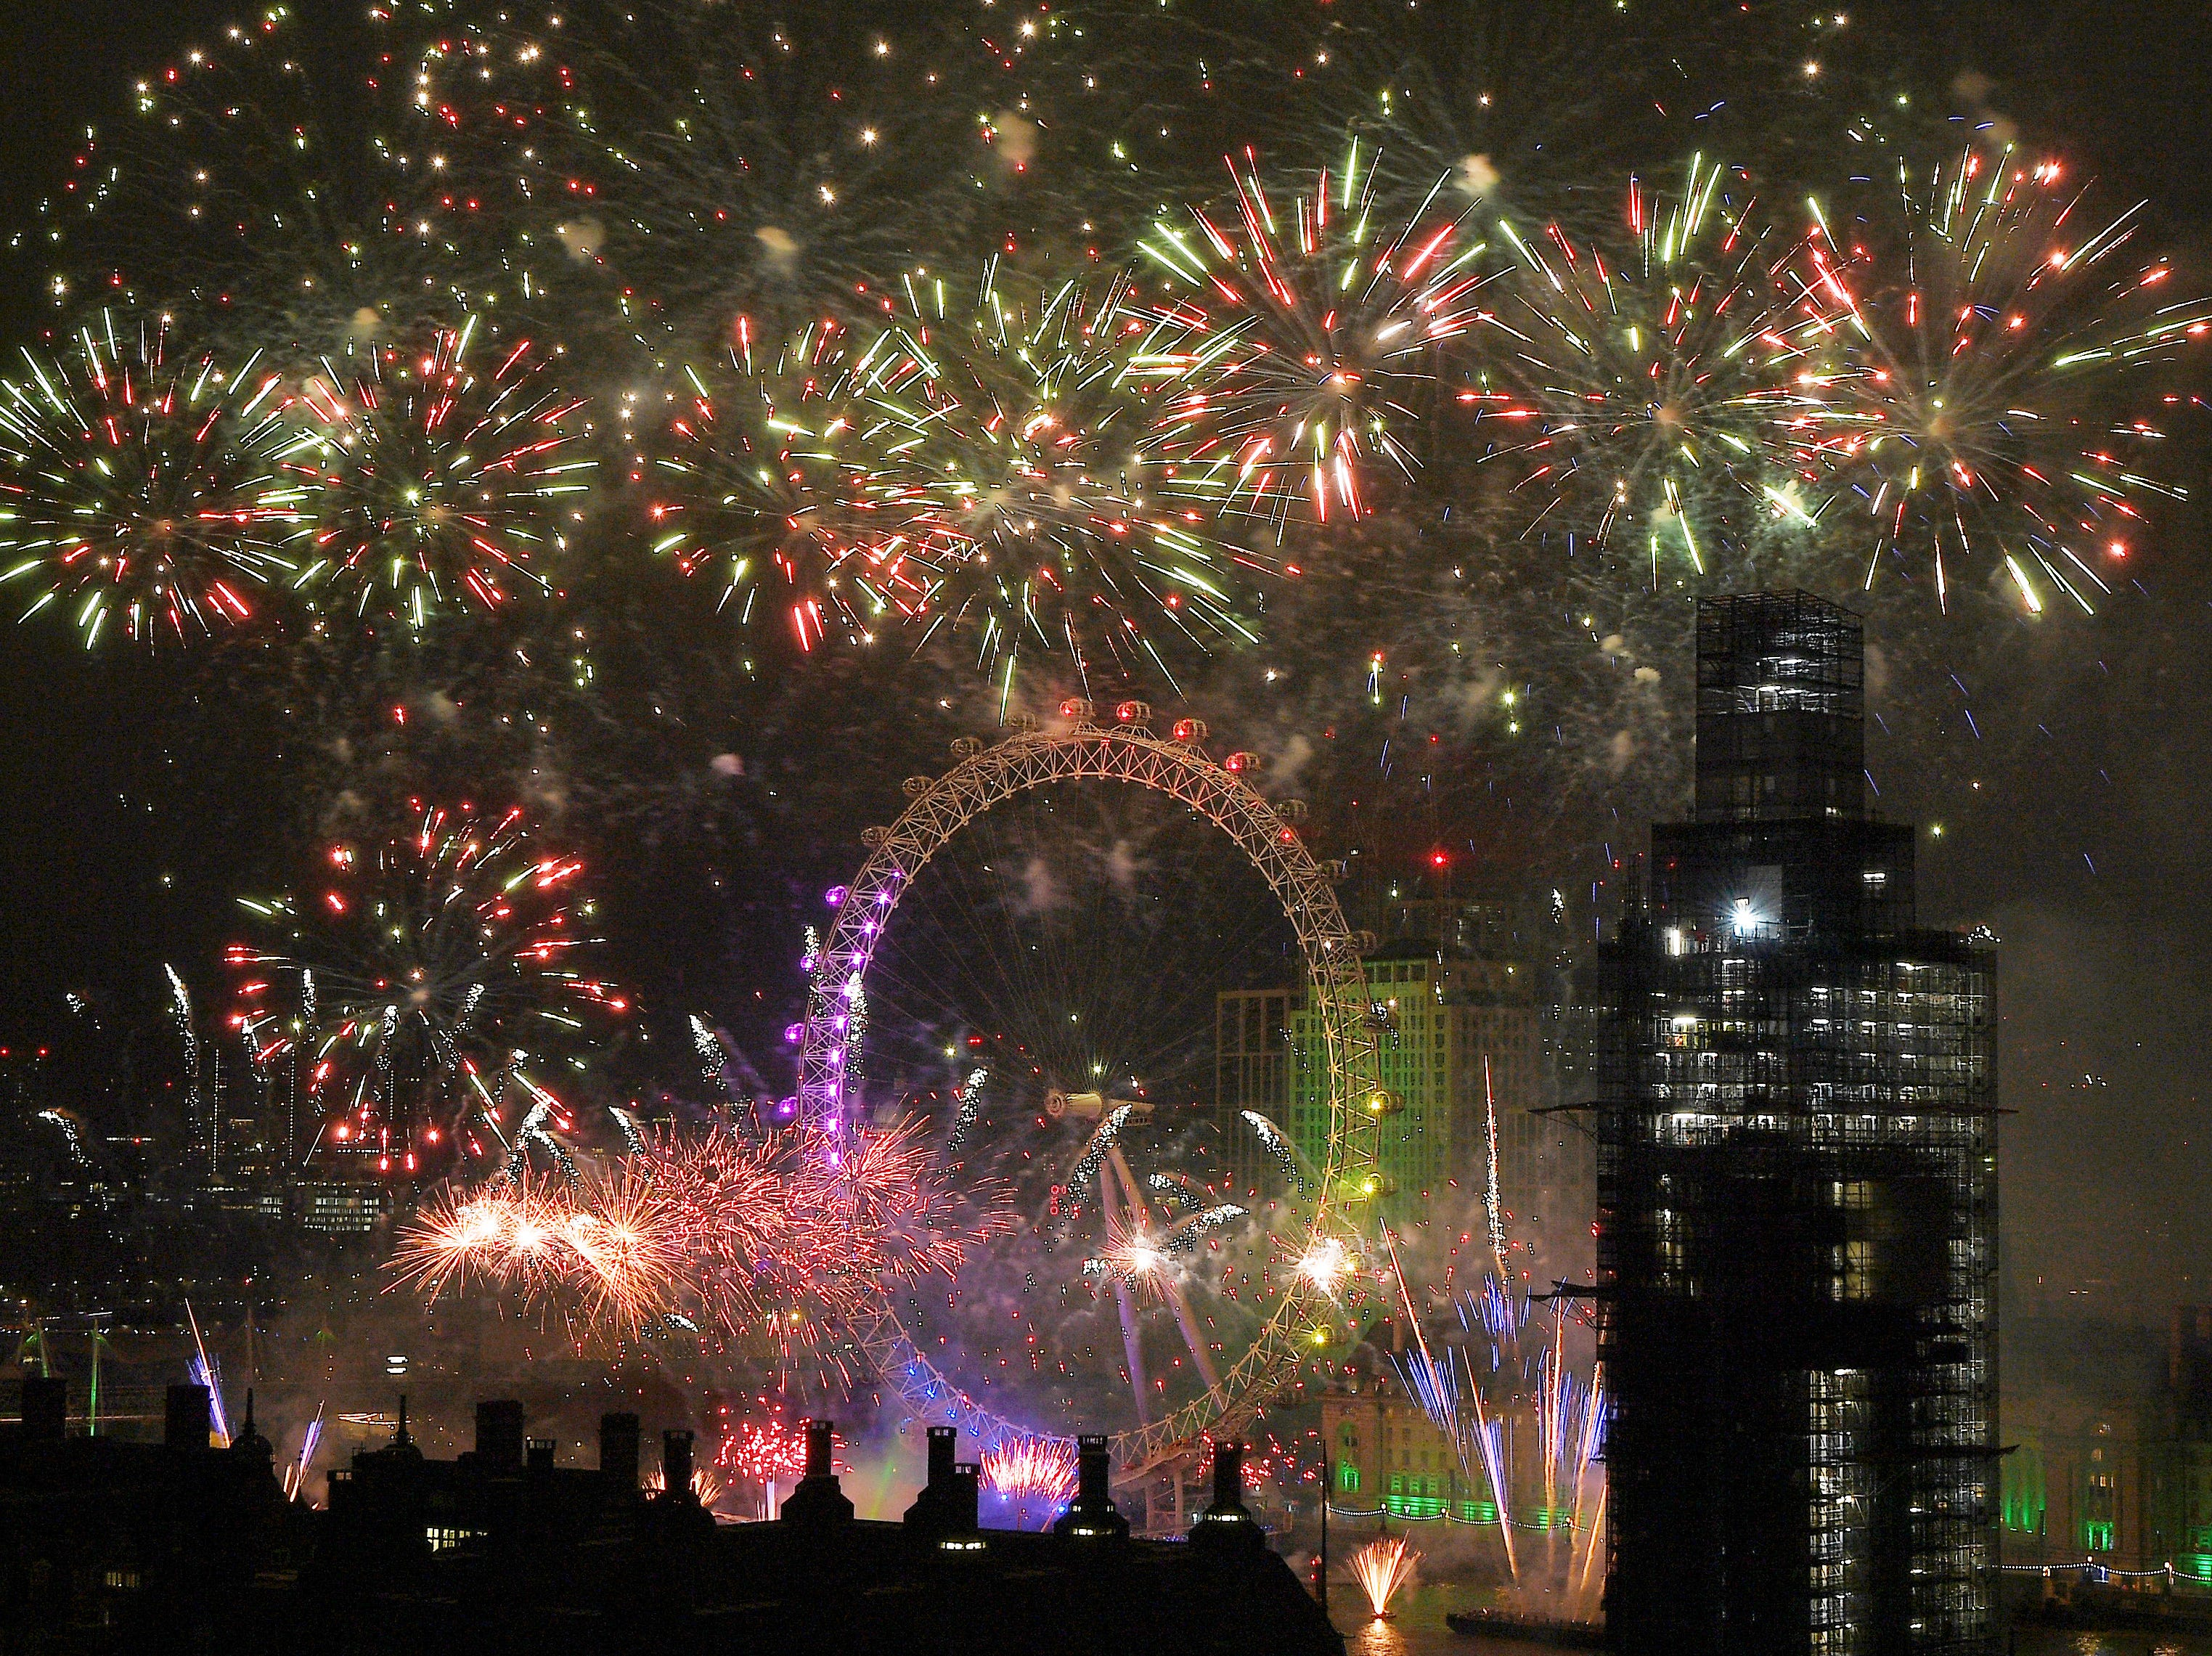 Fireworks explode over Westminster Abbey and Elizabeth Tower near Parliament as thousands of revelers gather along the banks of the River Thames to ring in the New Year on Jan. 1, 2019 in London, England. Parliament confirmed that after being silenced for renovation work since 2017, Big Ben's famous bongs would ring out at midnight again to welcome in 2019.